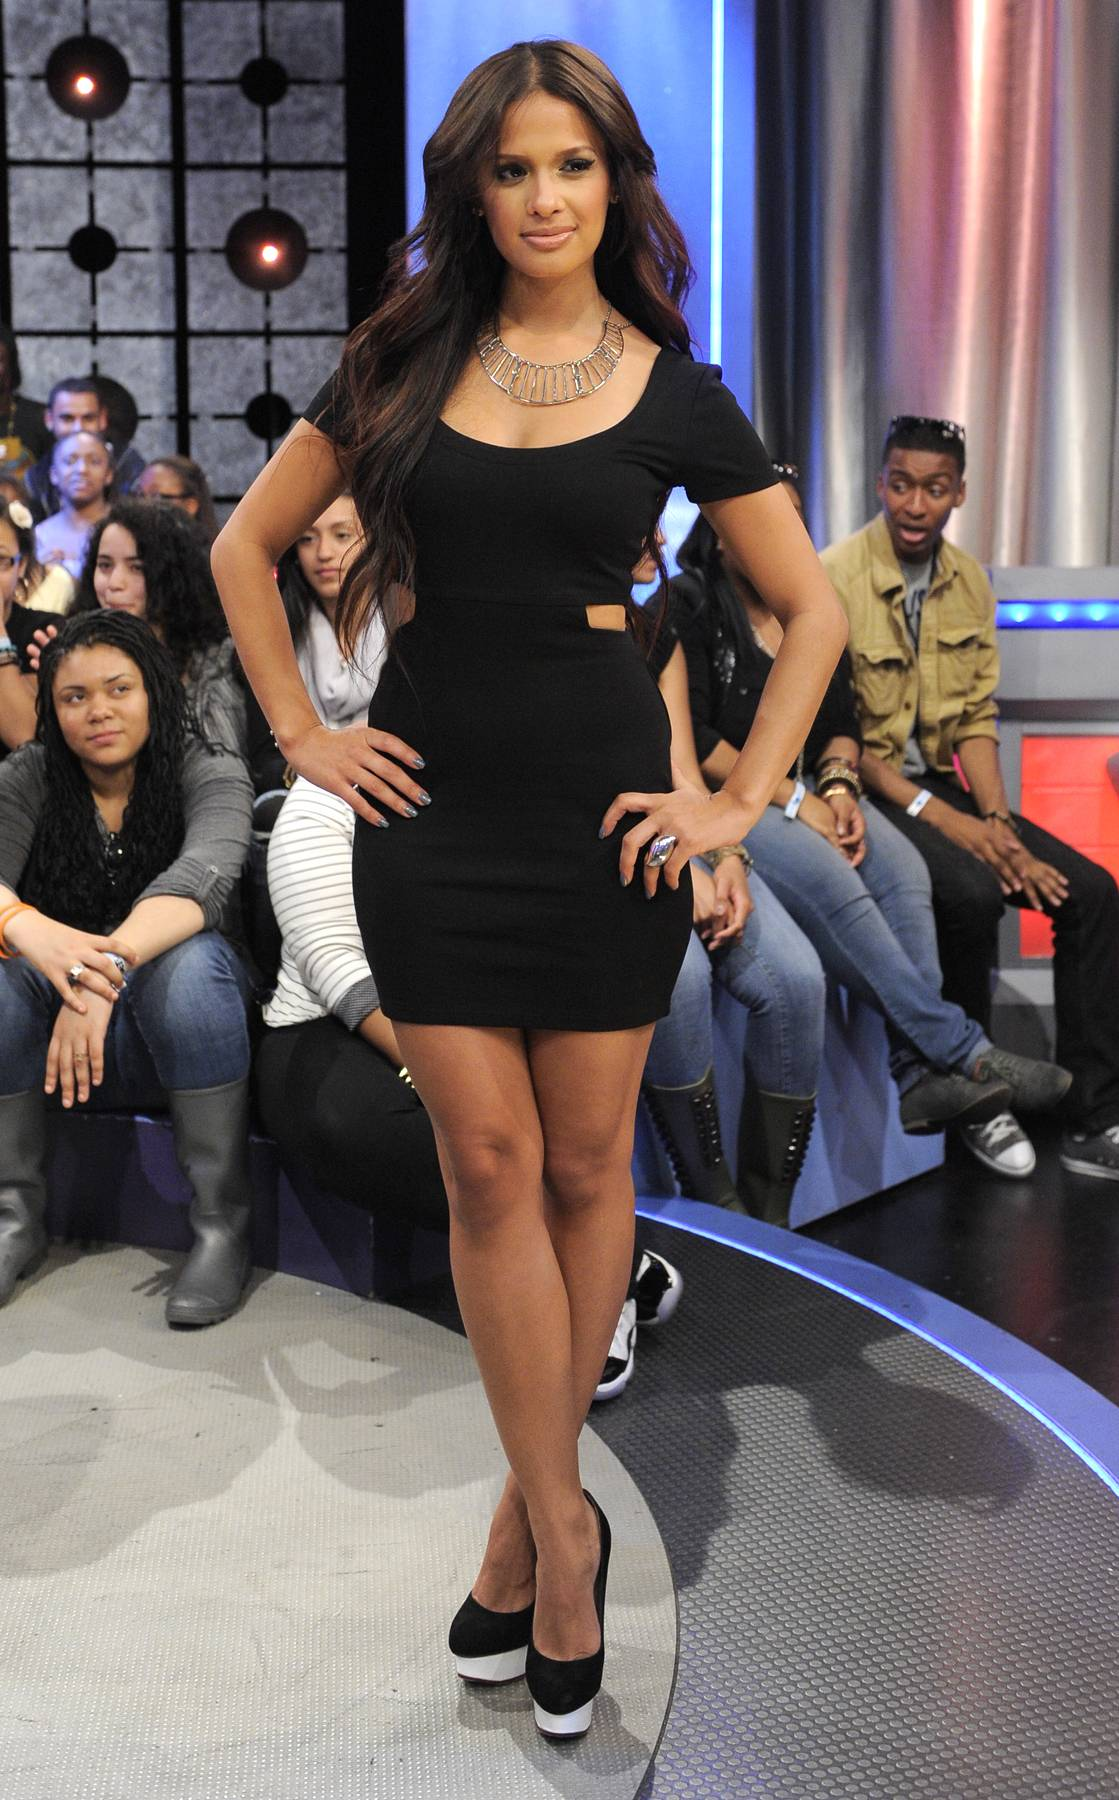 Platform Lifestyle - Great little black dress with an even better black heel coupled with a white platform on the shoe. Work!(Photo: John Ricard/BET)